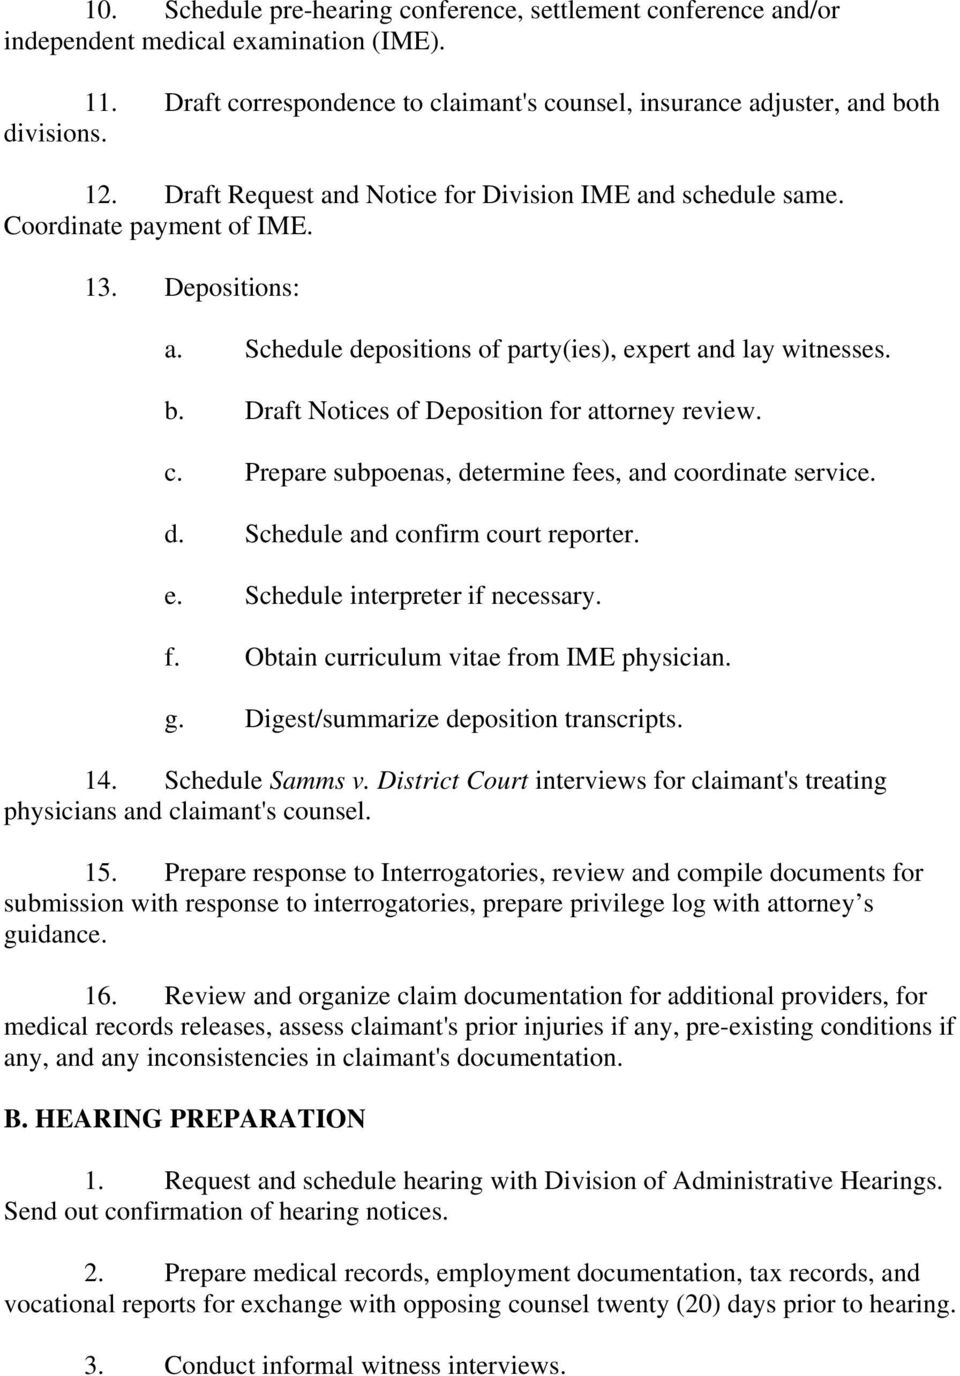 Draft Notices of Deposition for attorney review. c. Prepare subpoenas, determine fees, and coordinate service. d. Schedule and confirm court reporter. e. Schedule interpreter if necessary. f. Obtain curriculum vitae from IME physician.